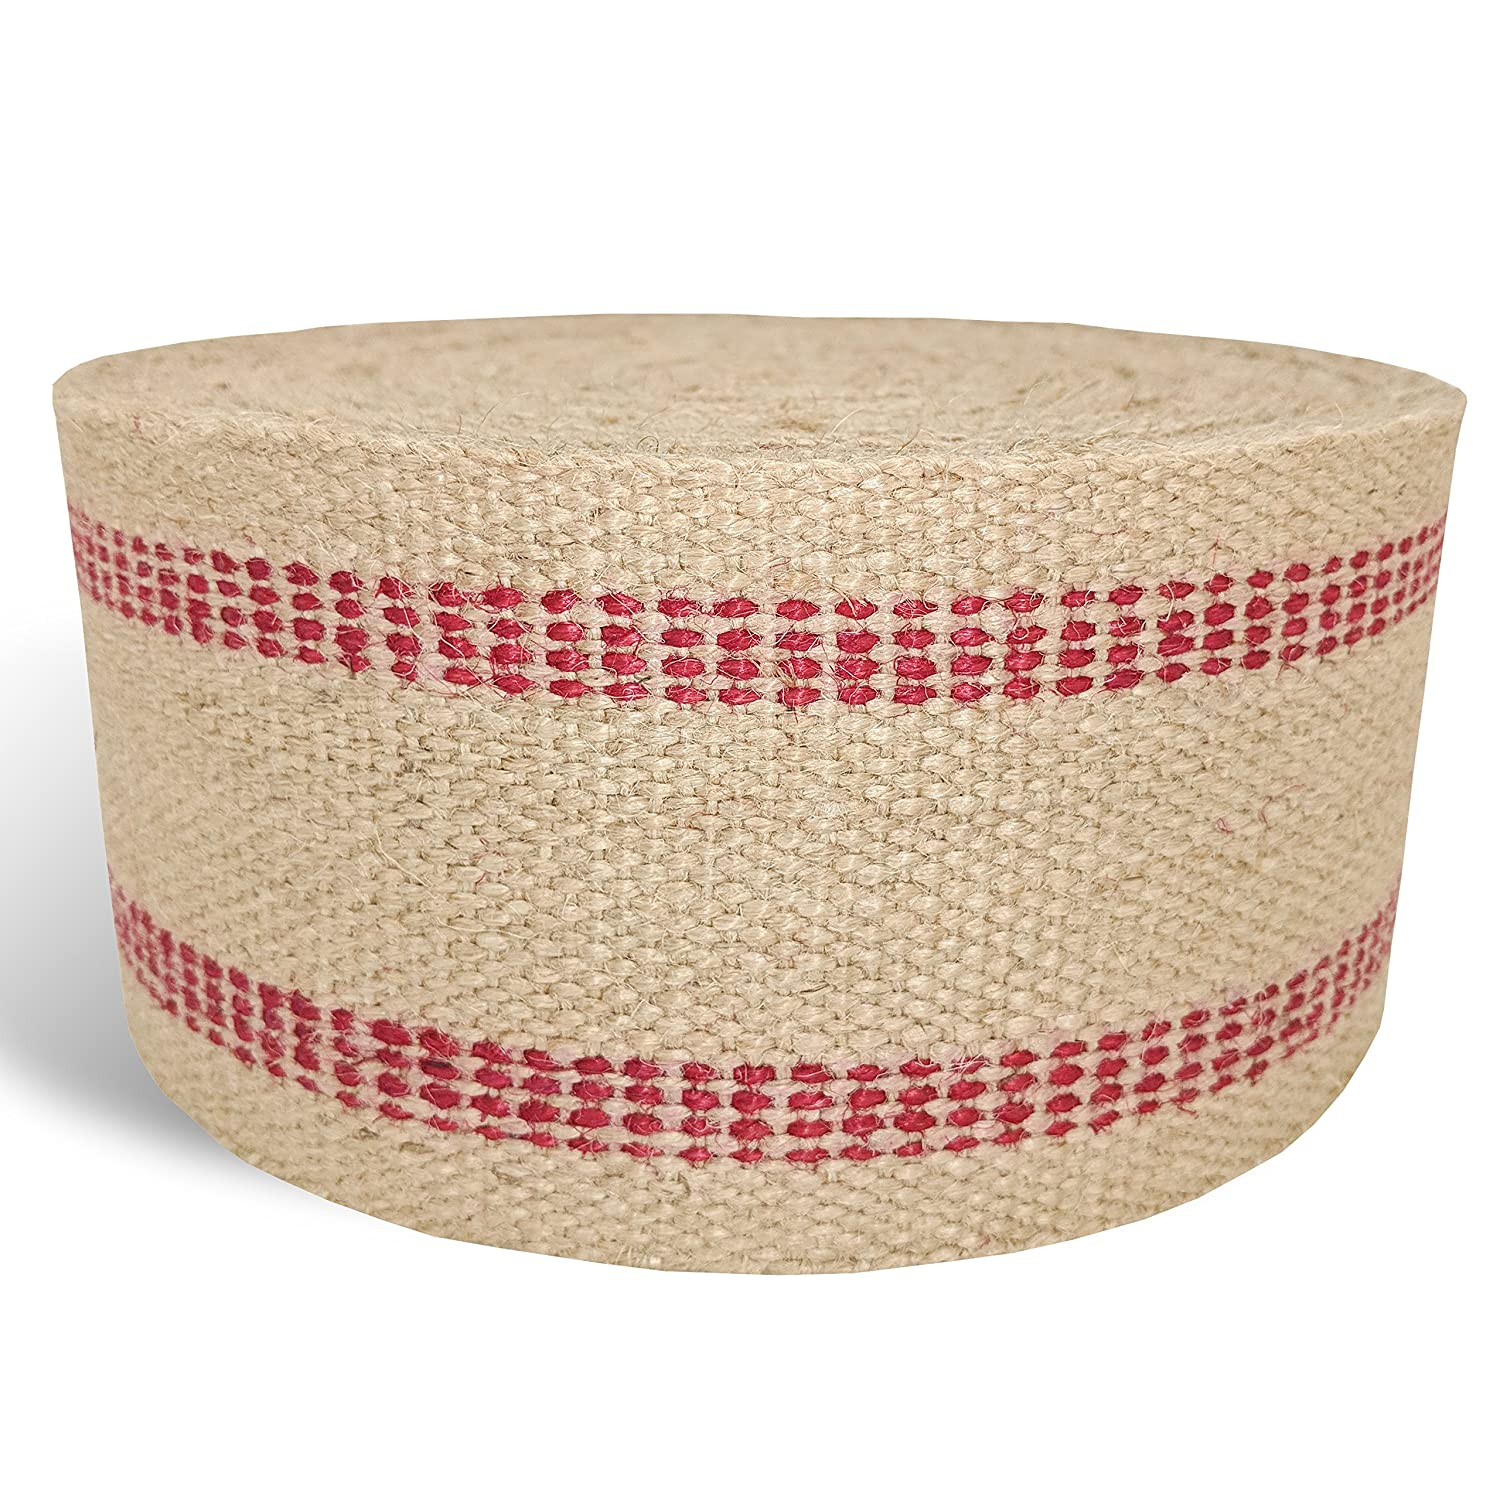 Red Upholstery Craft Jute Webbing, 11 lbs 3.5 x 10Yd and 20 Yd Rolls (20 yd) Wholesale Upholstery Supply 4336912947